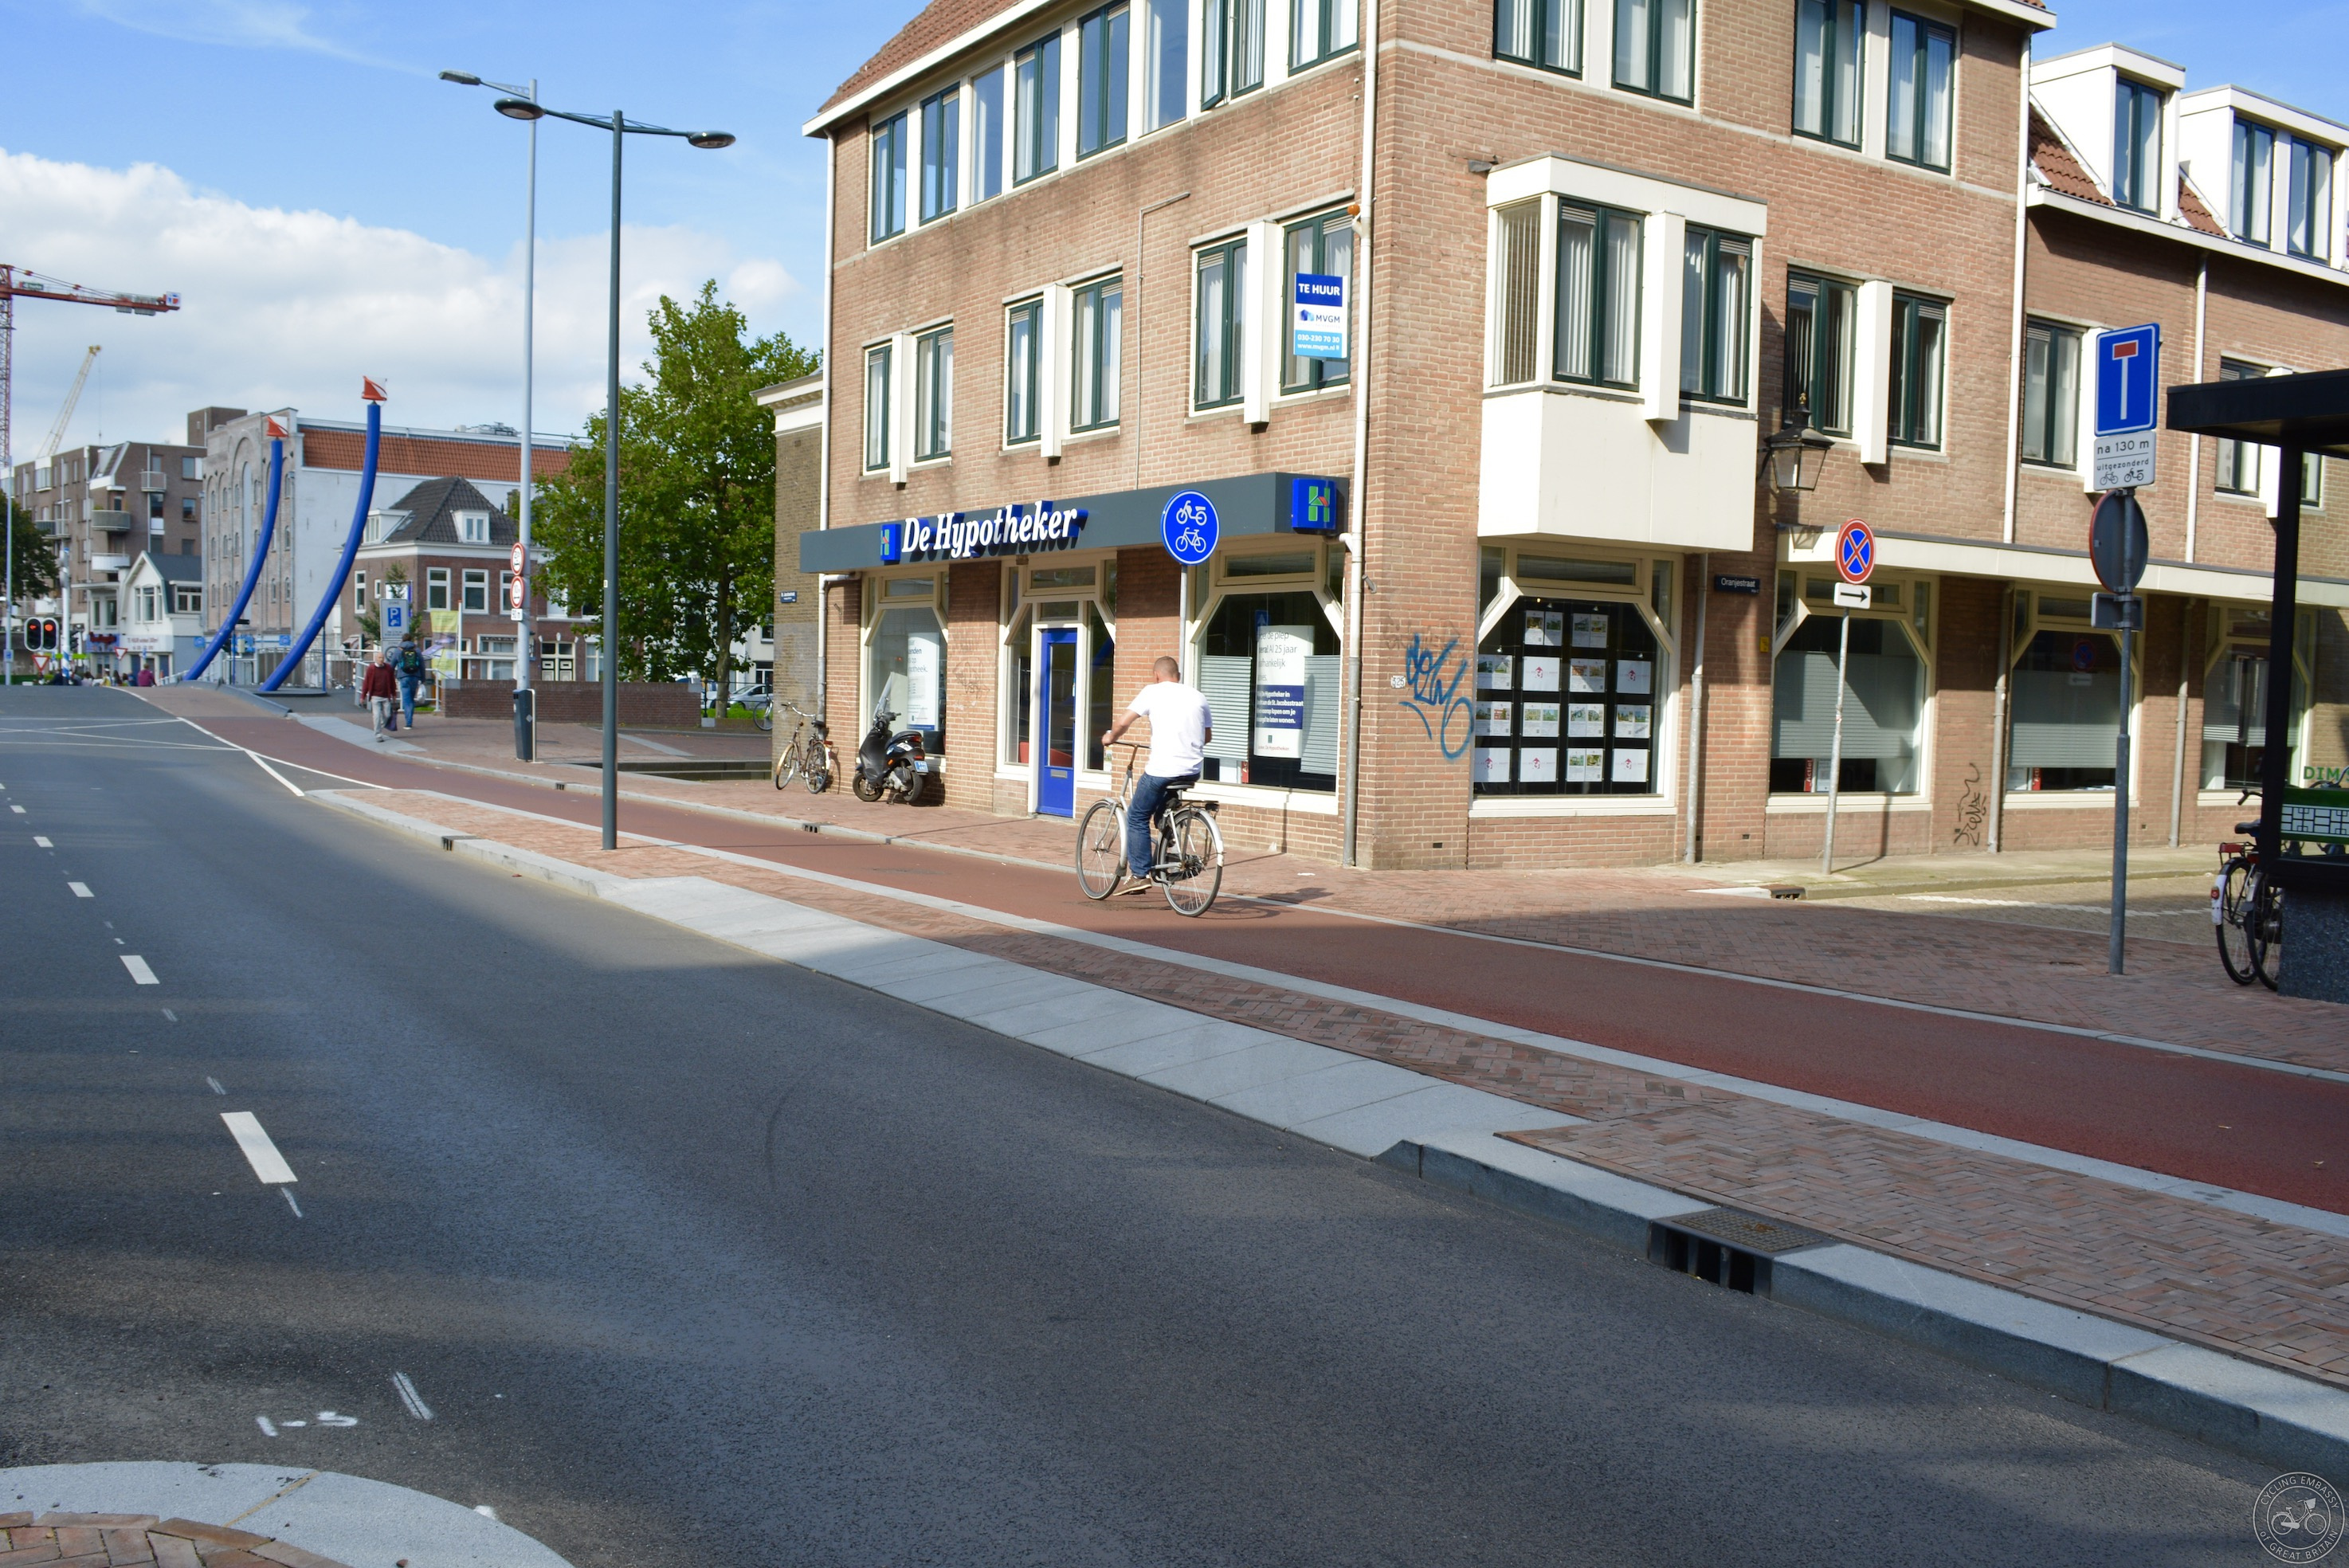 Inritbanden (Entrance Kerbs) in Utrecht